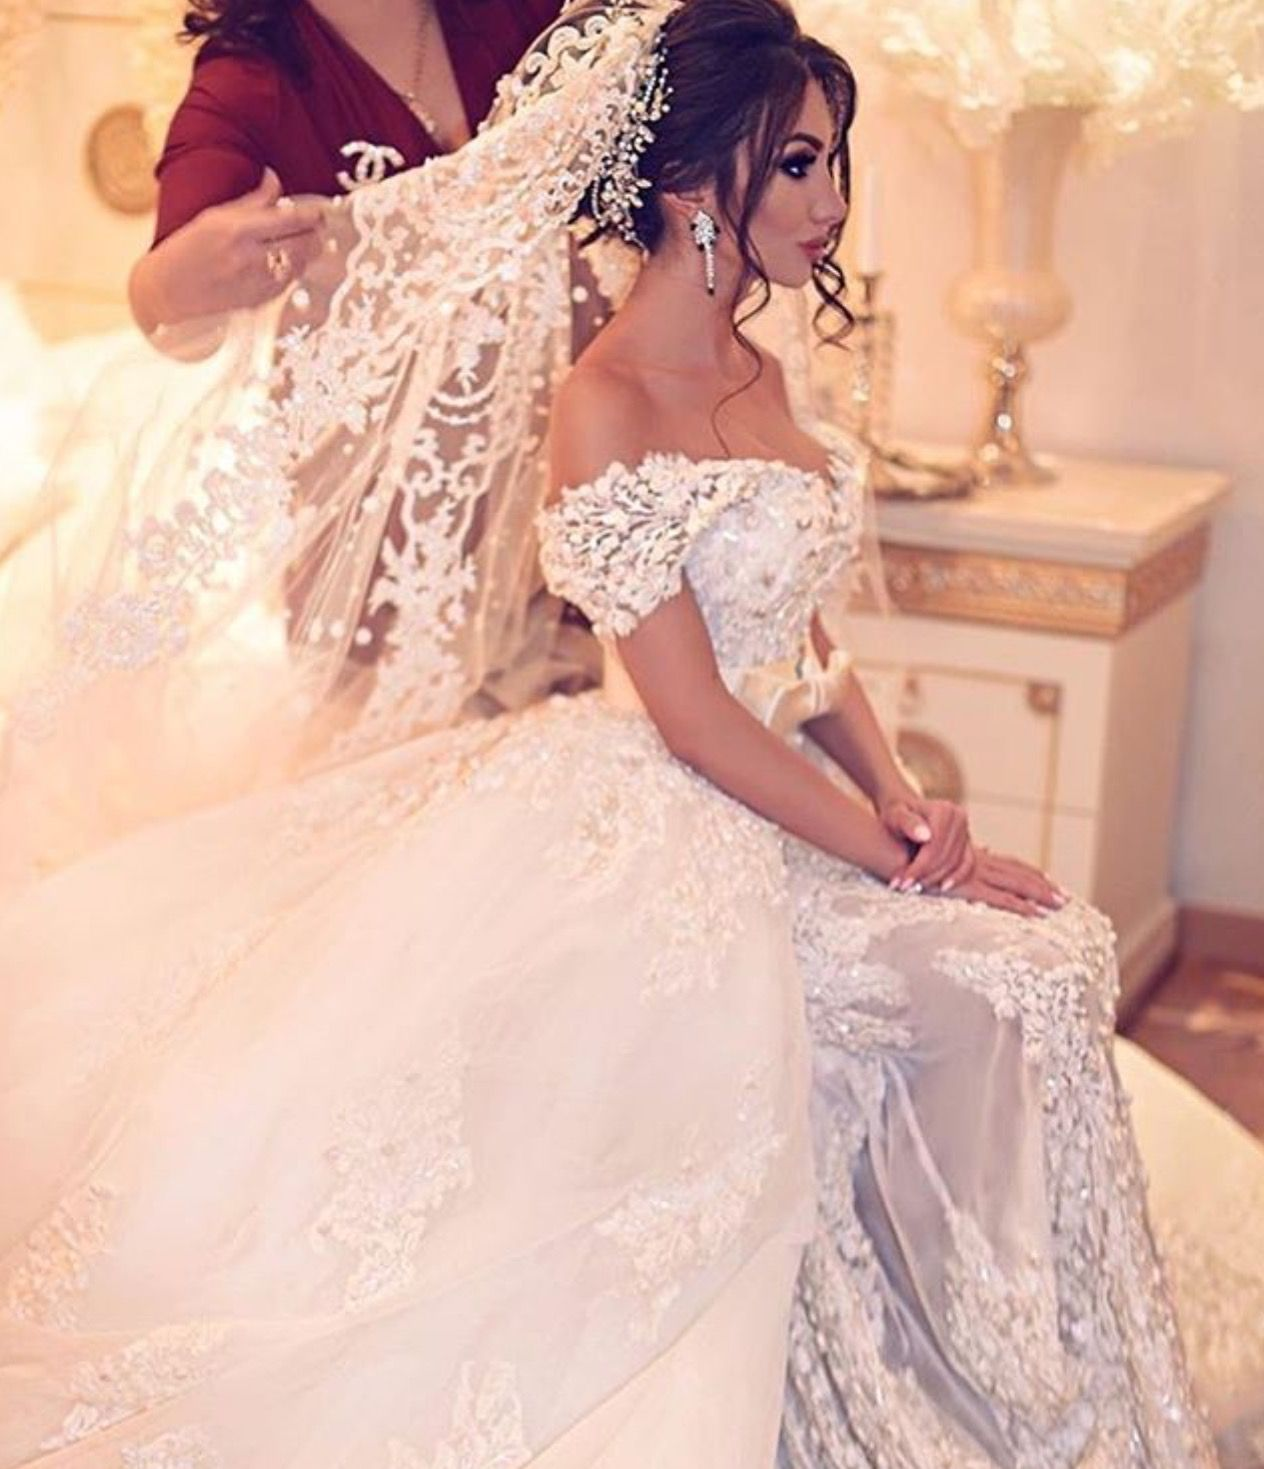 Wedding dress | Wedding dress | Pinterest | Peinados para boda, De ...